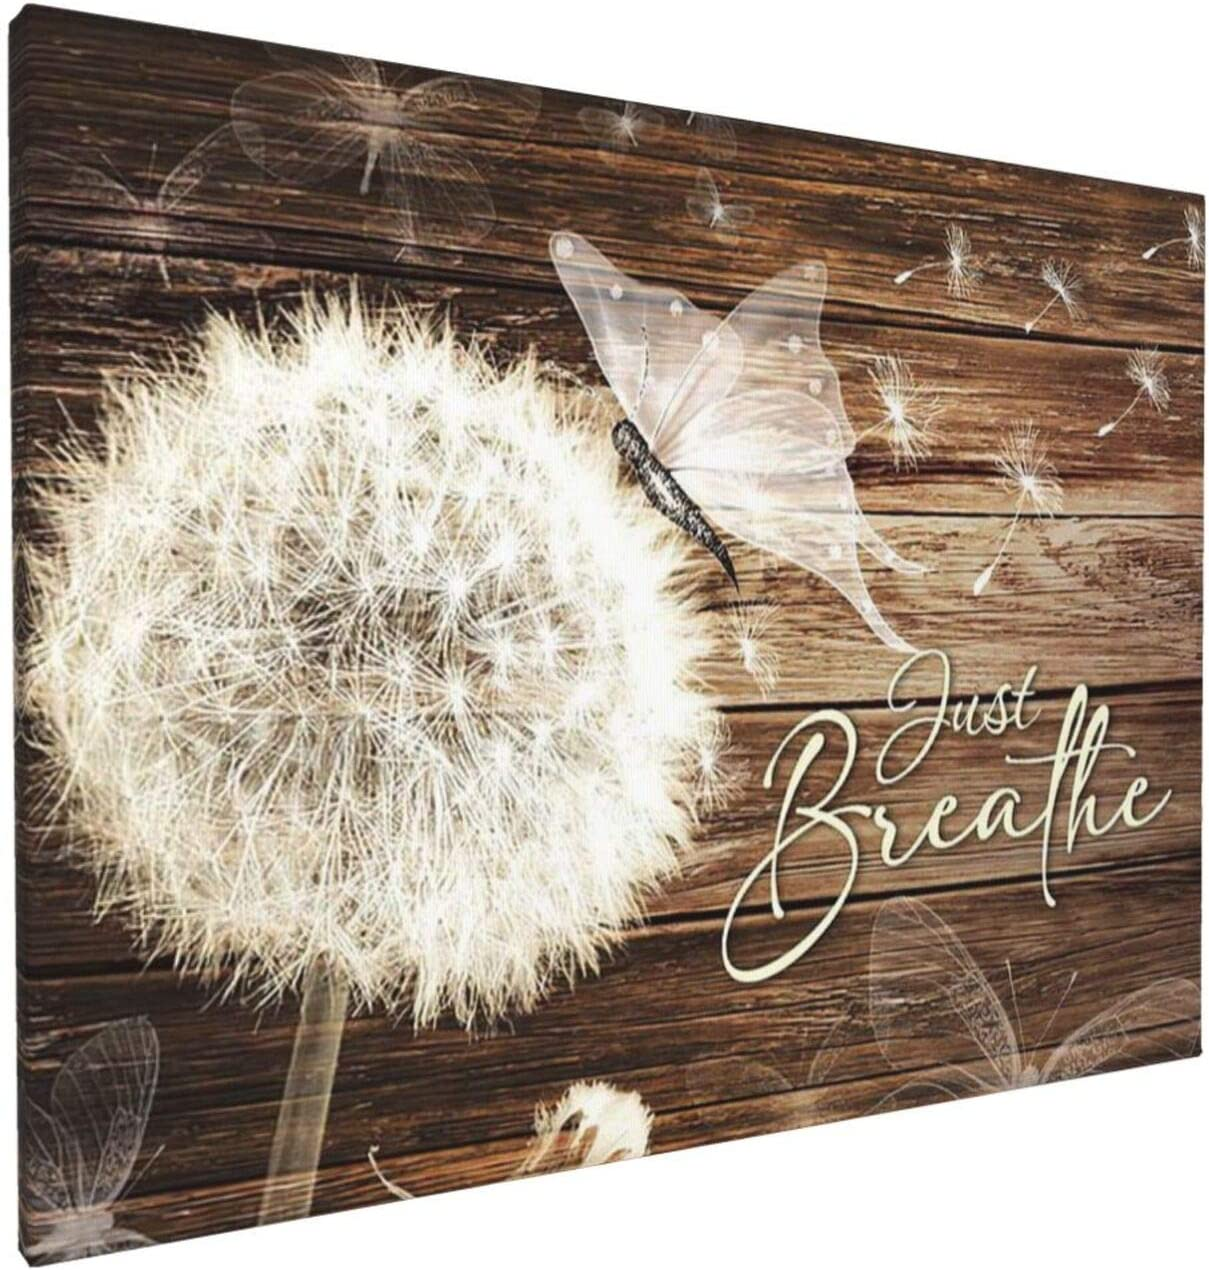 Canvas Wall Art For Bathroom Decor Just Breathe Dandelion Butterfly Wood Pictures Wall Art Modern Rustic White Flower Floral Canvas Giclee Print Painting Wall Decor For Bedroom Living Room Artwork Framed Ready To Hang 12x16inch